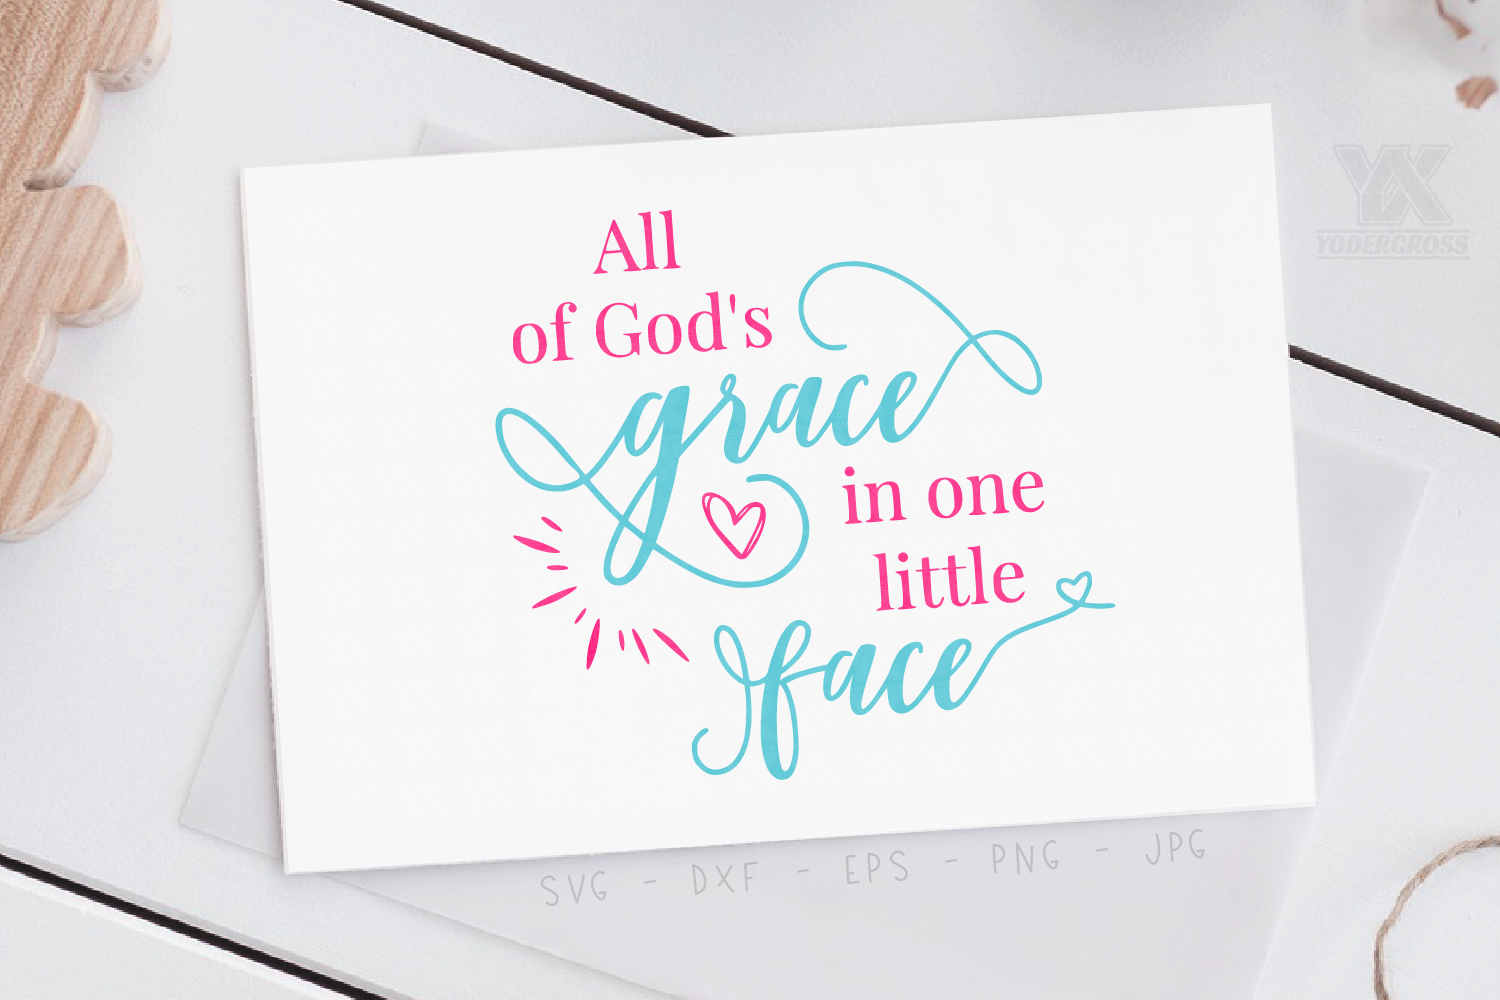 All of God's Grace in One Little Face, Faith SVG example image 2